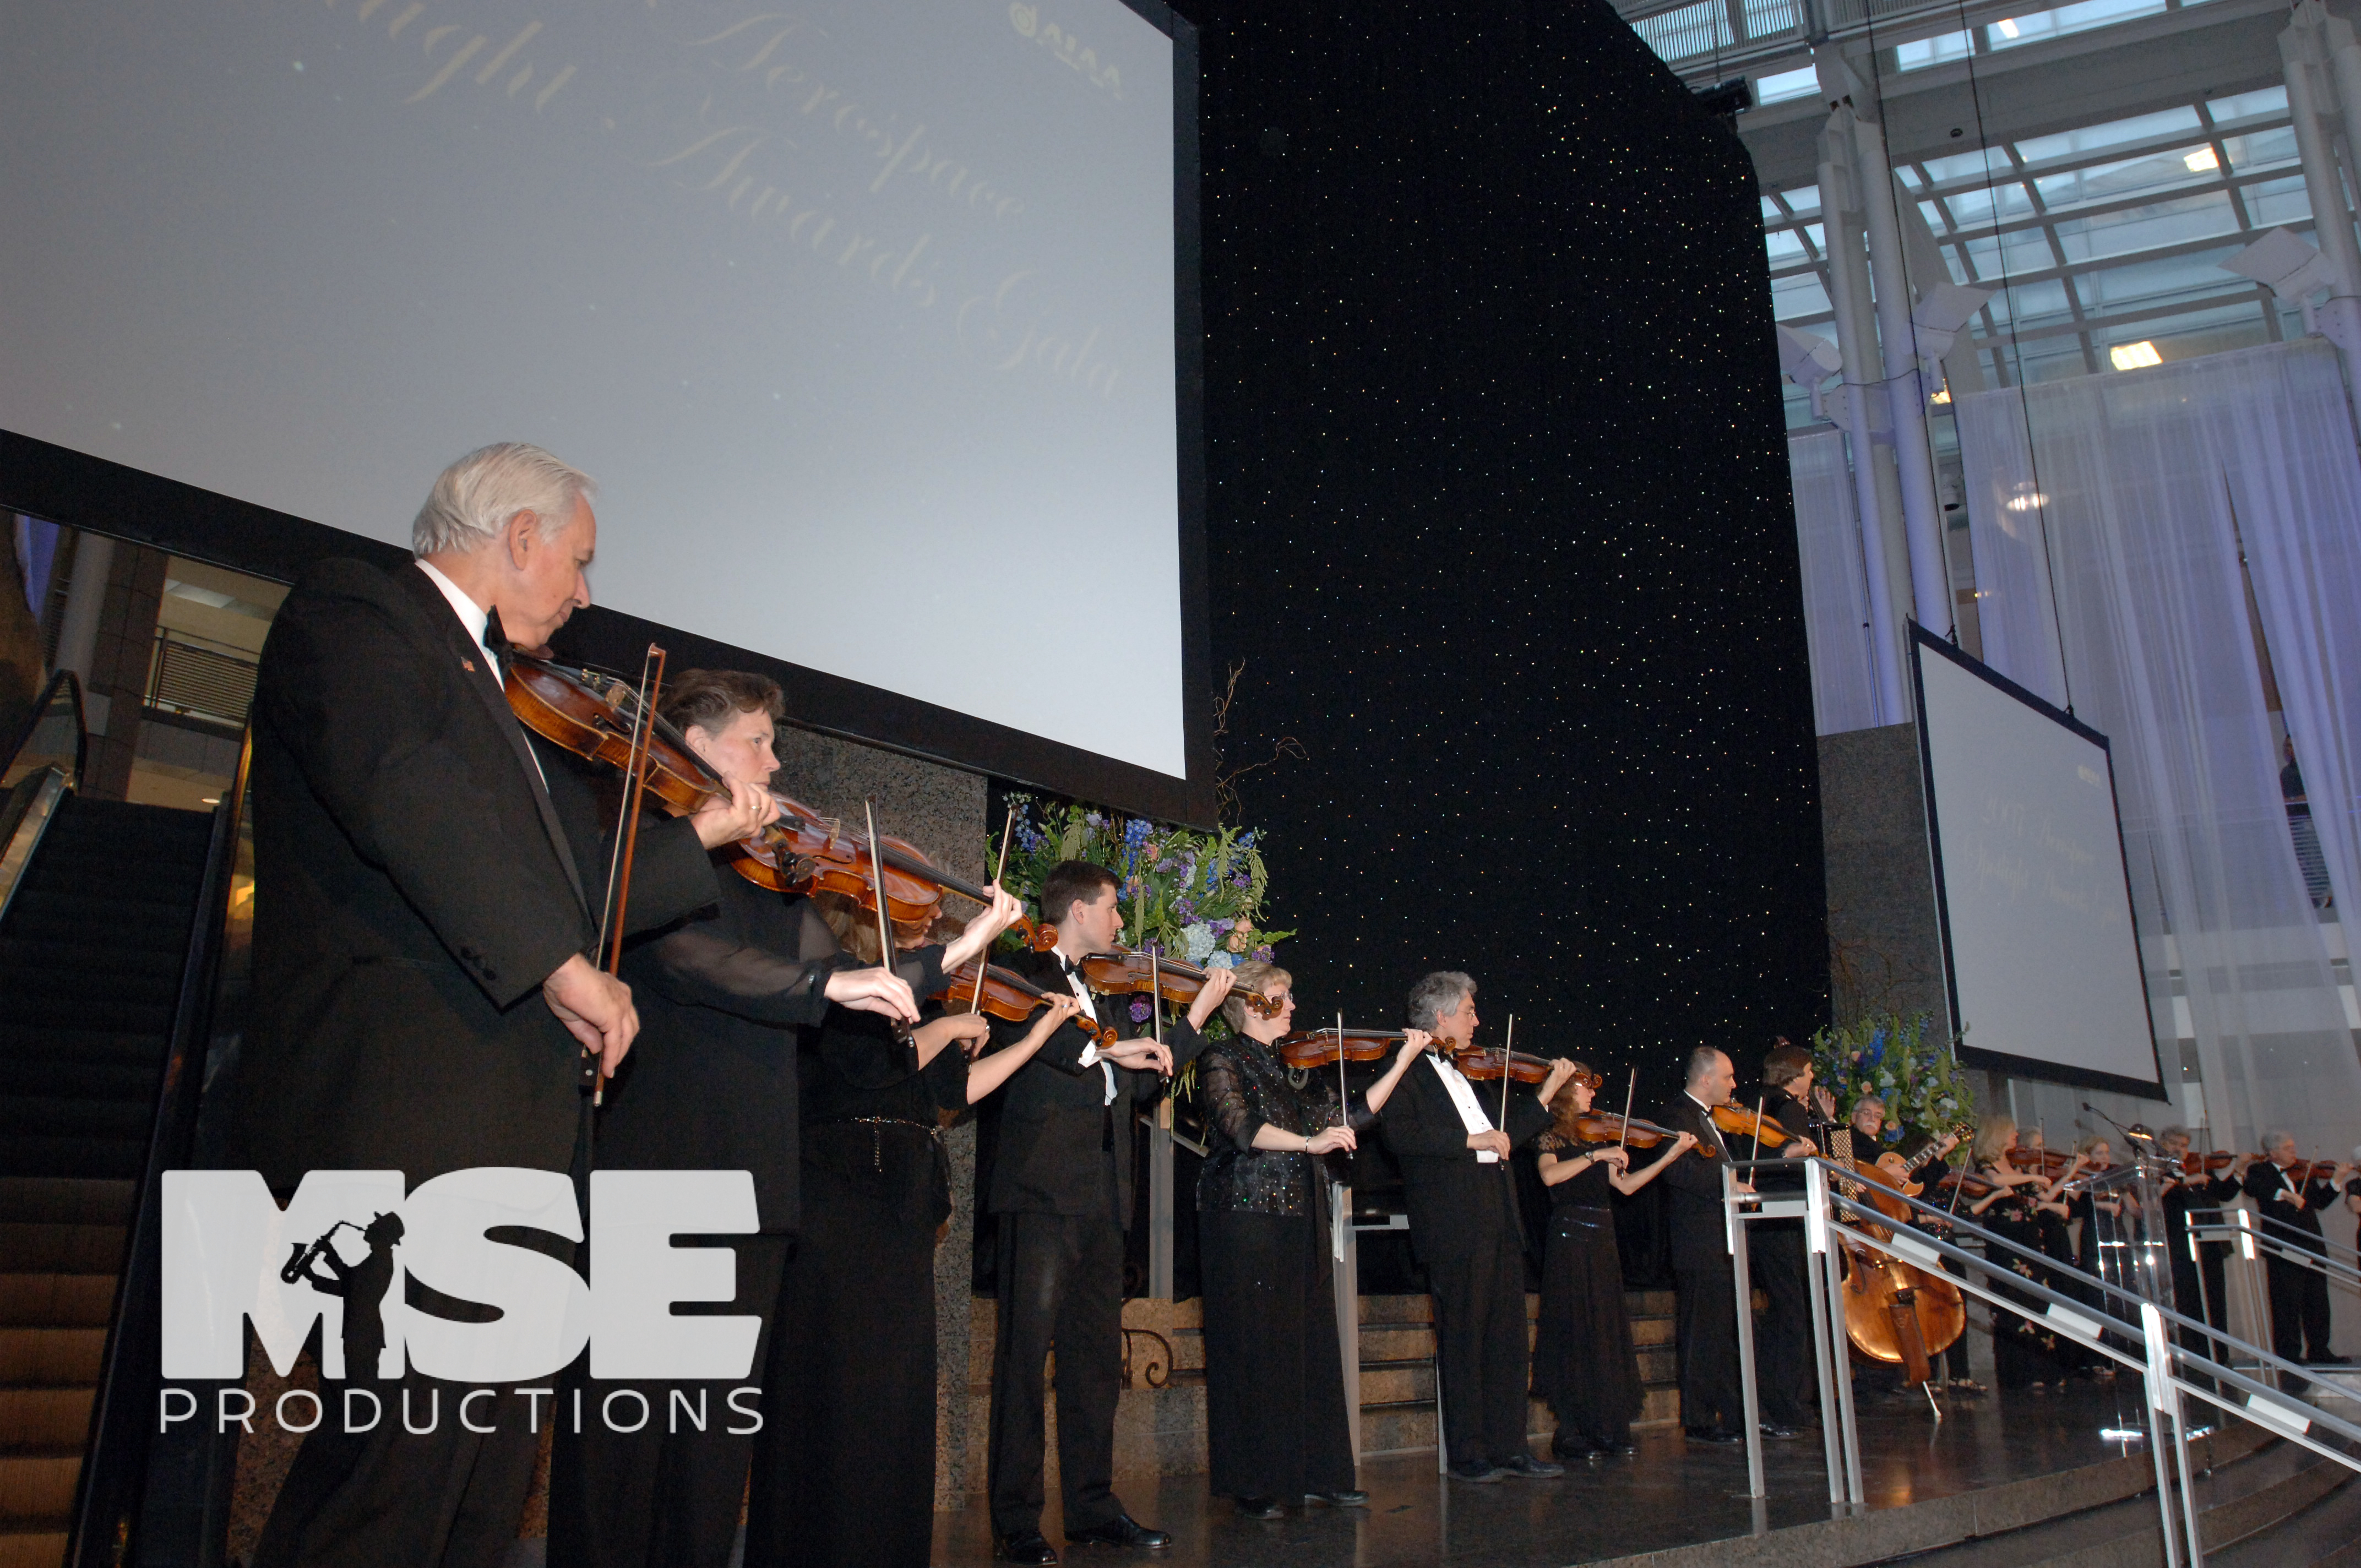 Strolling Strings MSE Productions 1